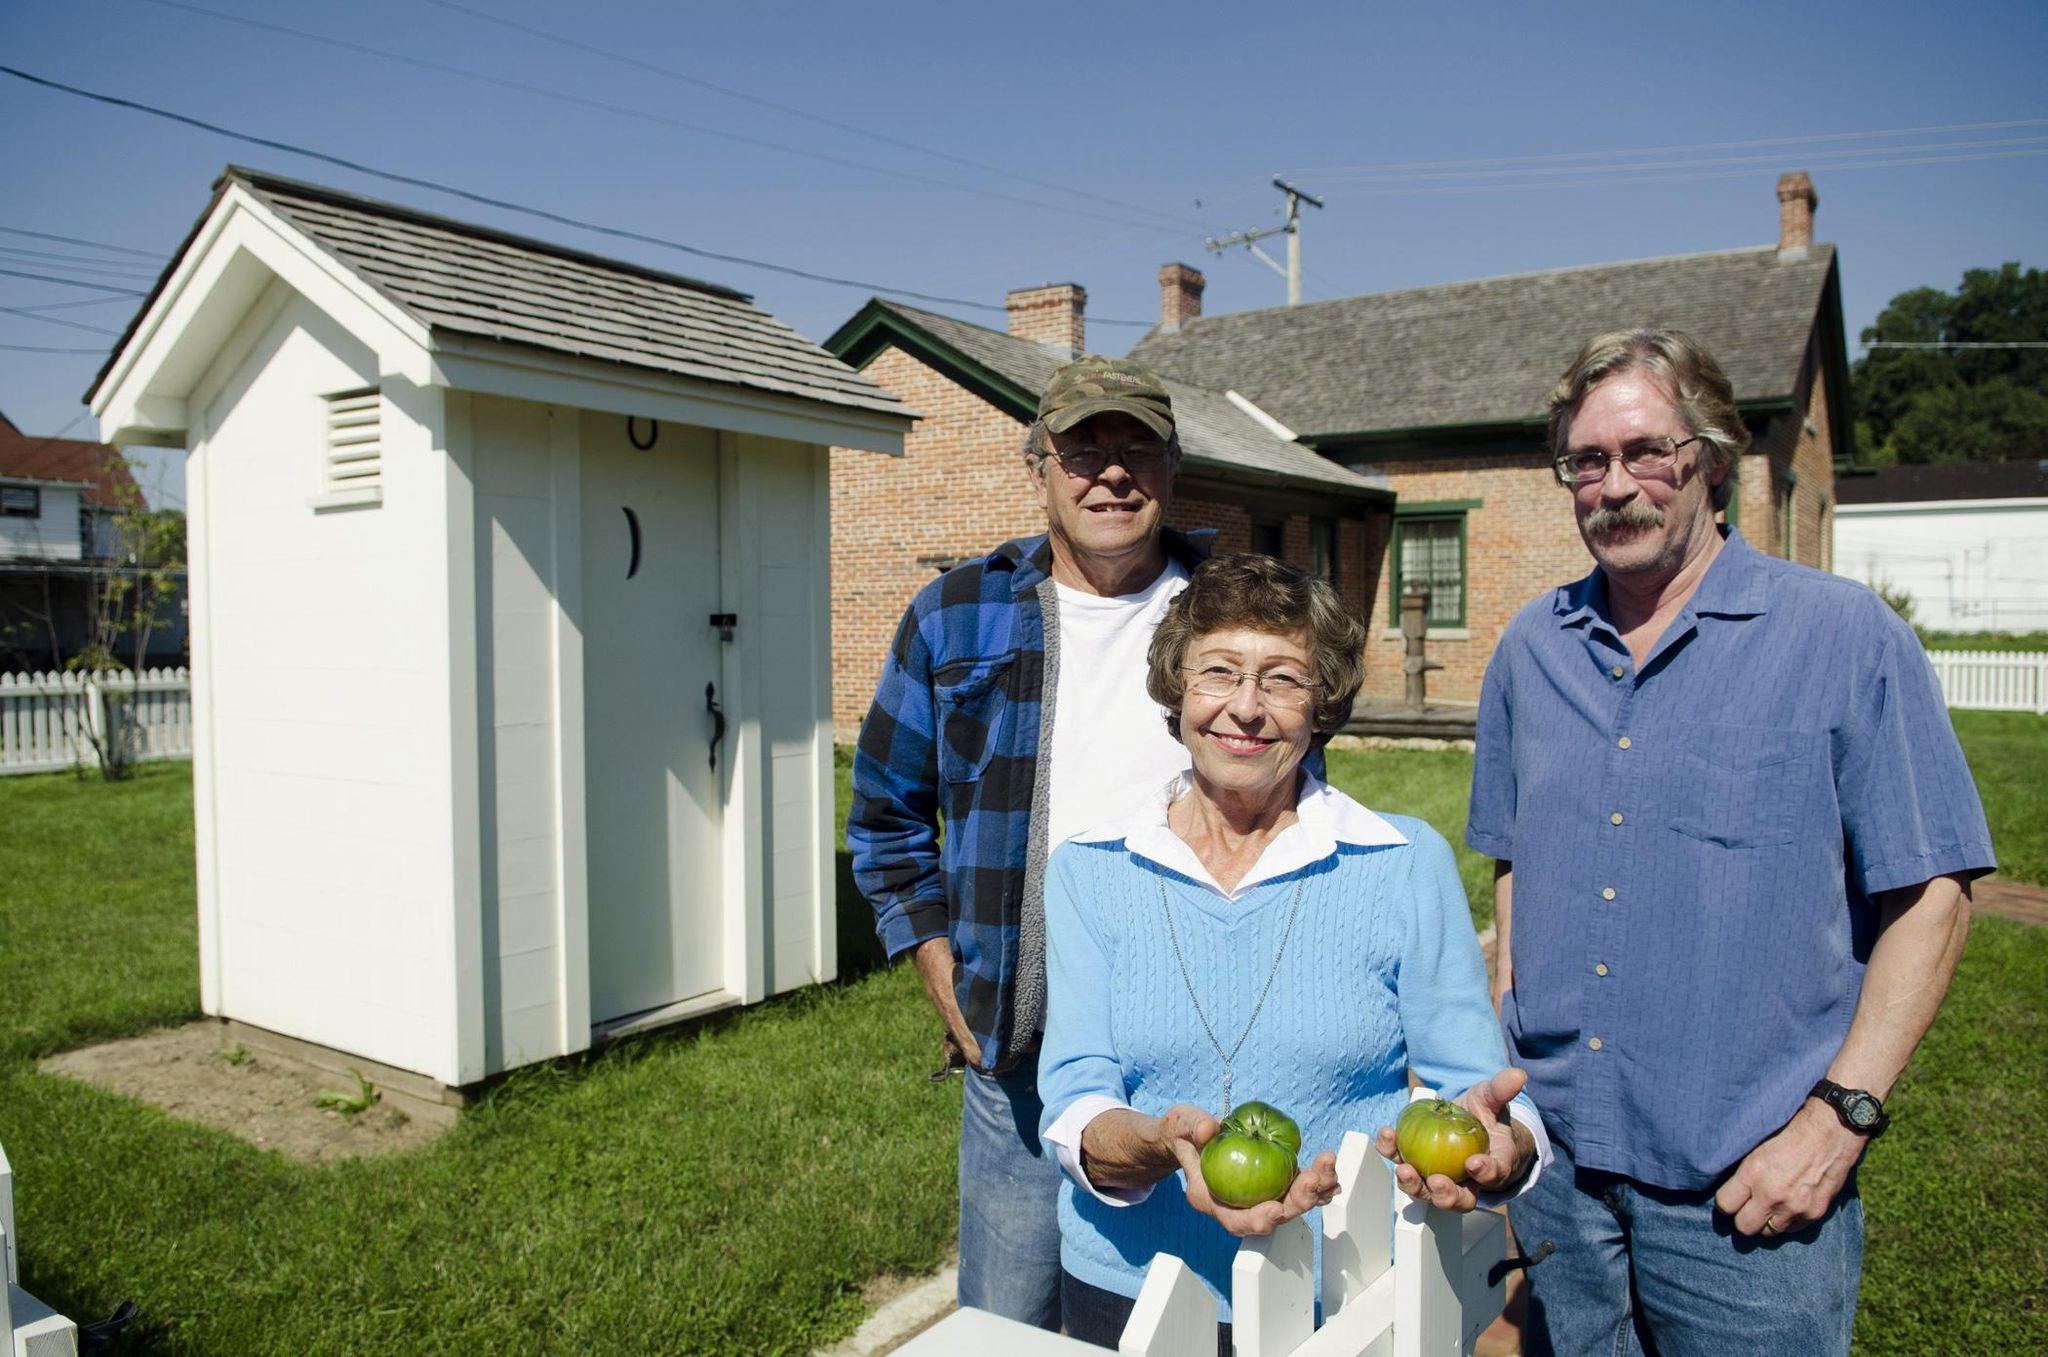 Tomato grown from 150 year-old Abe Lincoln dump compared to modern tomato